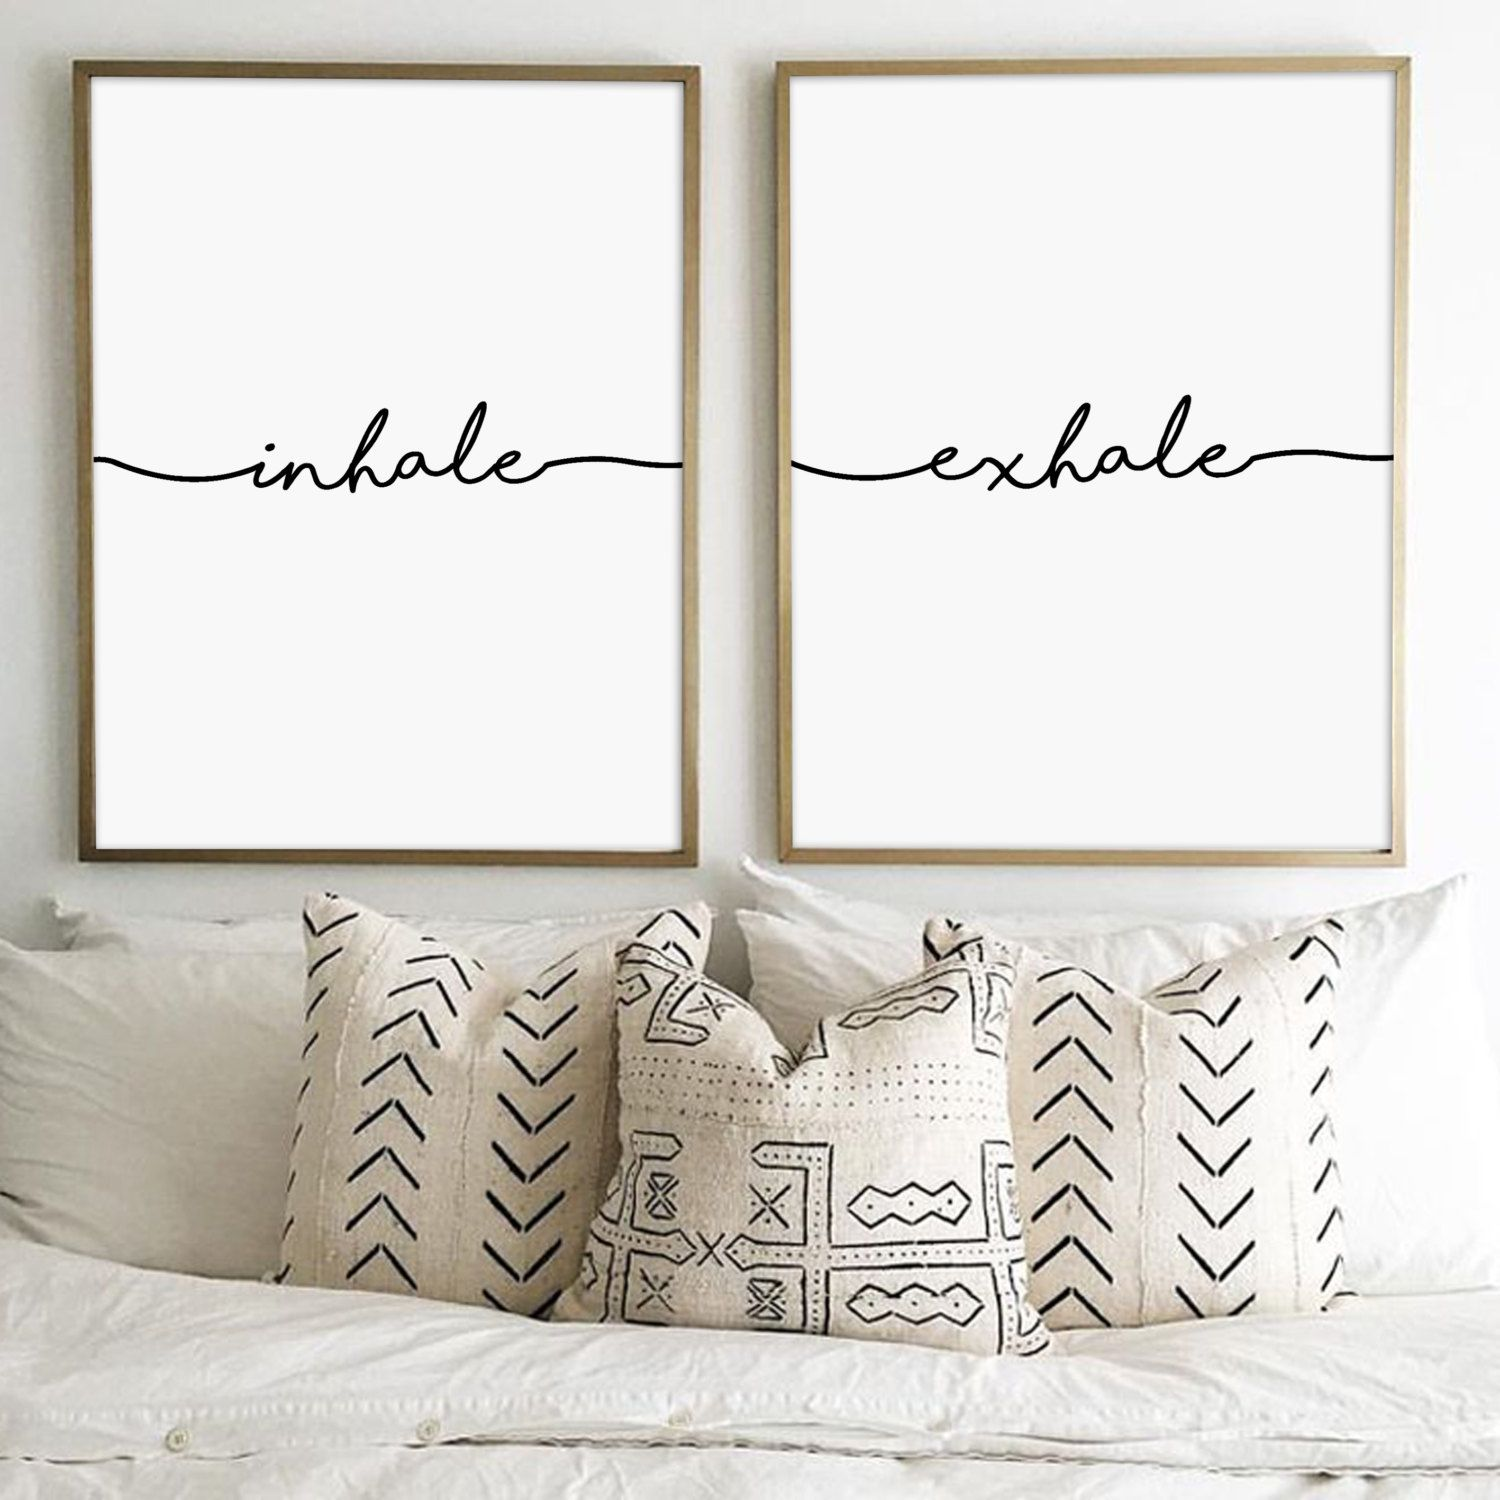 Inhale Exhale Print Pilates Quote Yoga Fitness Poster Art Bestselling